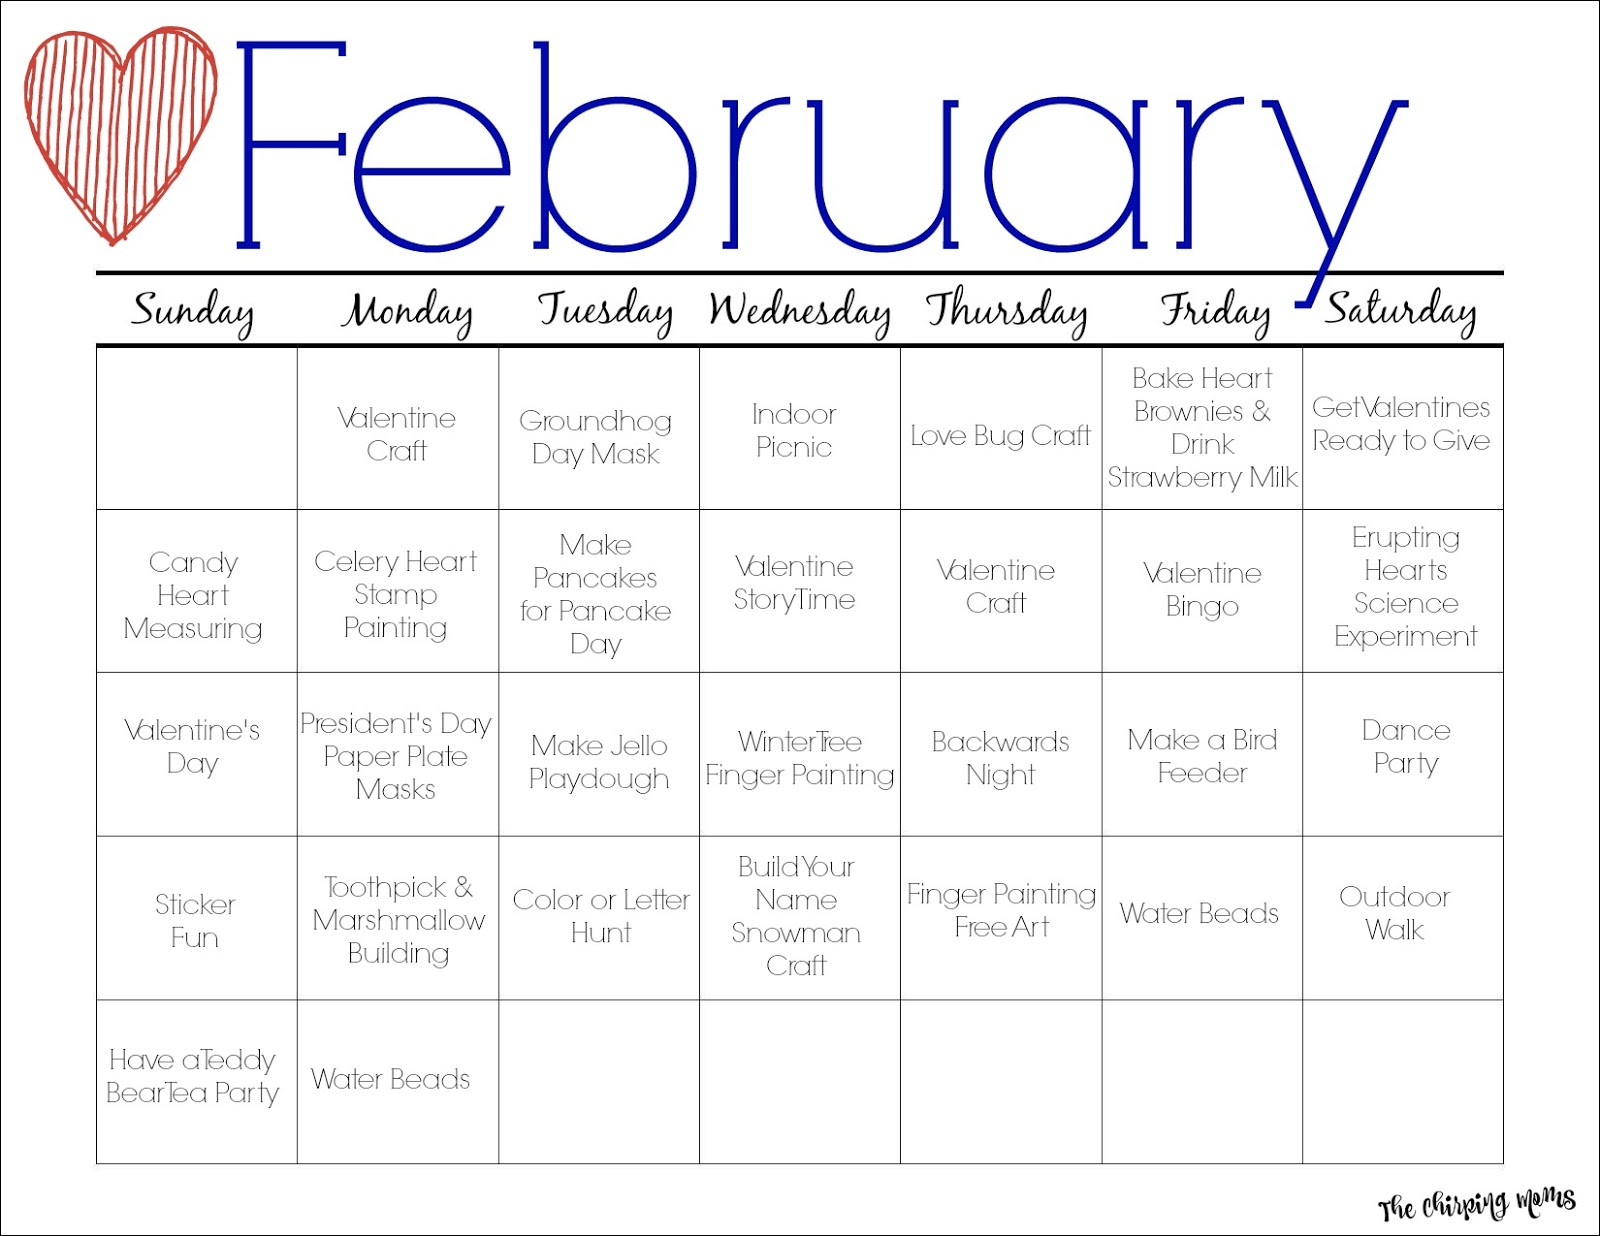 Worksheets For February : February printable activity calendar for kids the